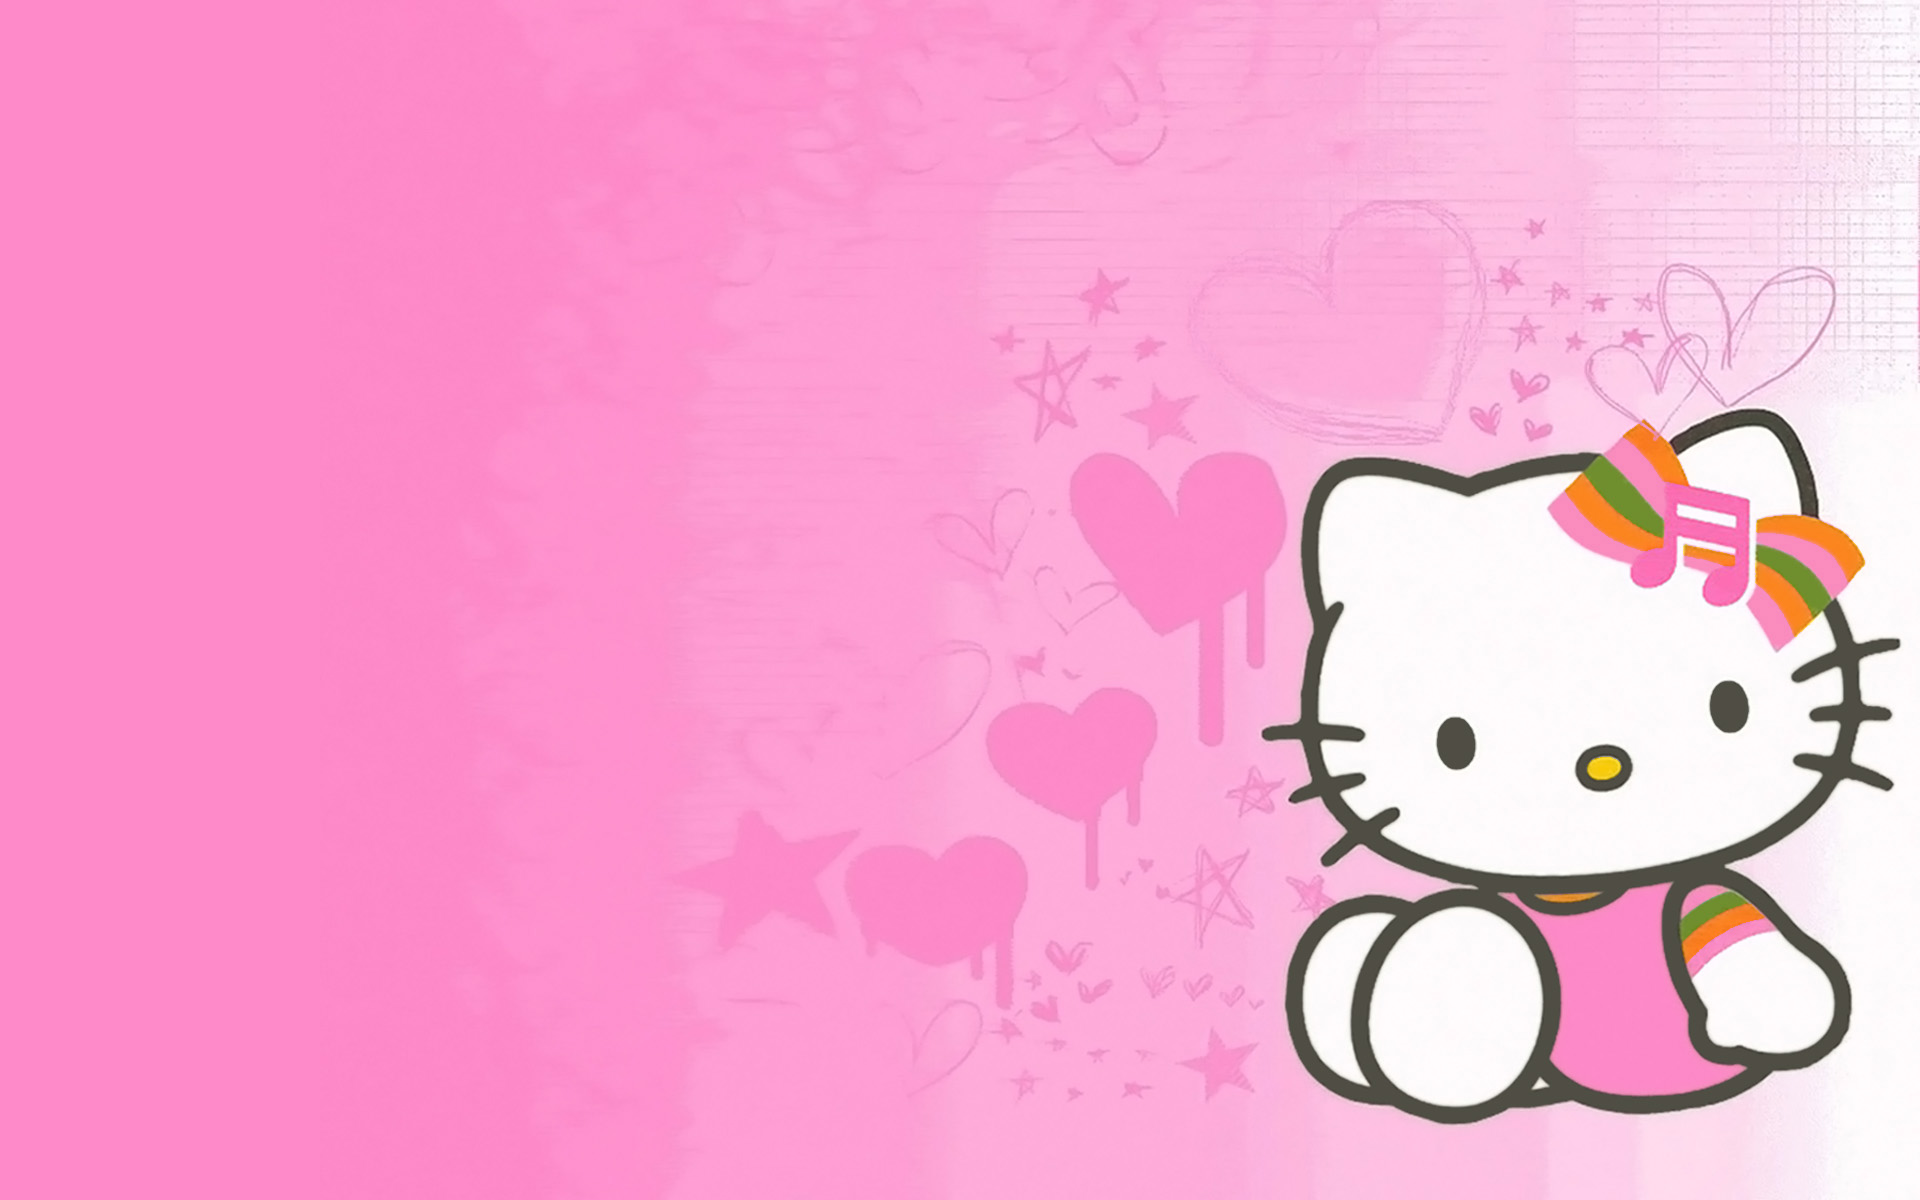 fileswordpresscom201009hello kitty valentine 1920x1200jpg 1920x1200